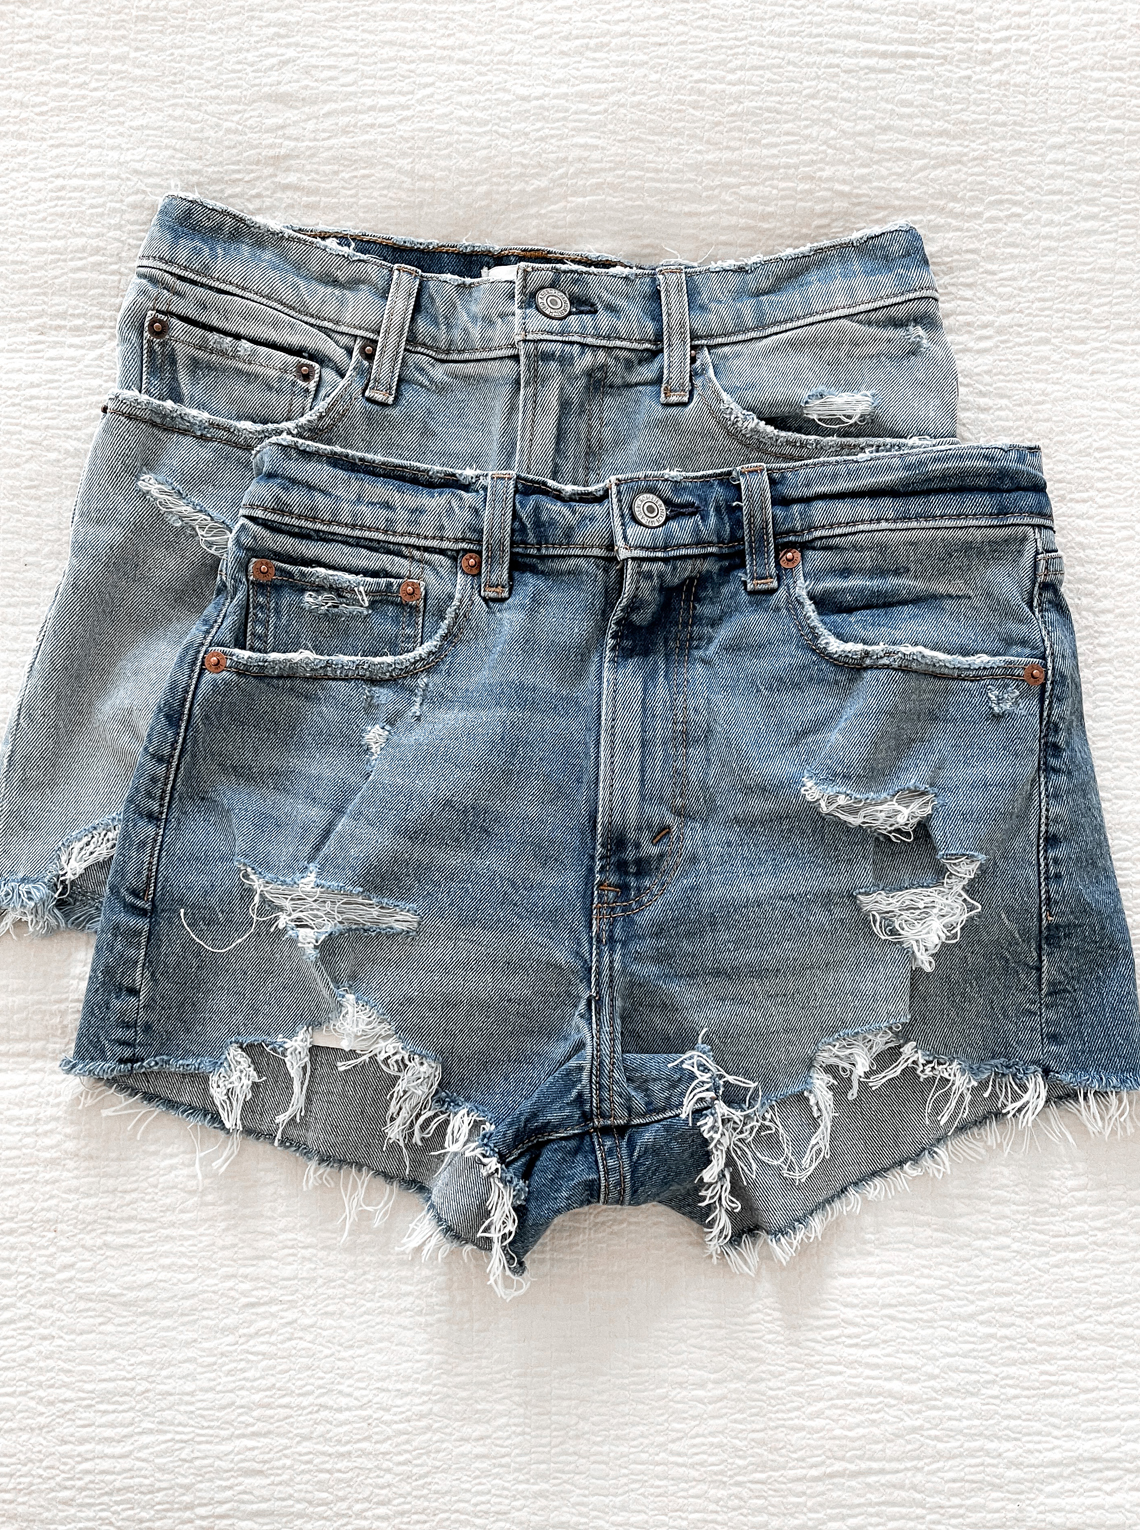 Fashion Jackson Abercrombie Denim Shorts